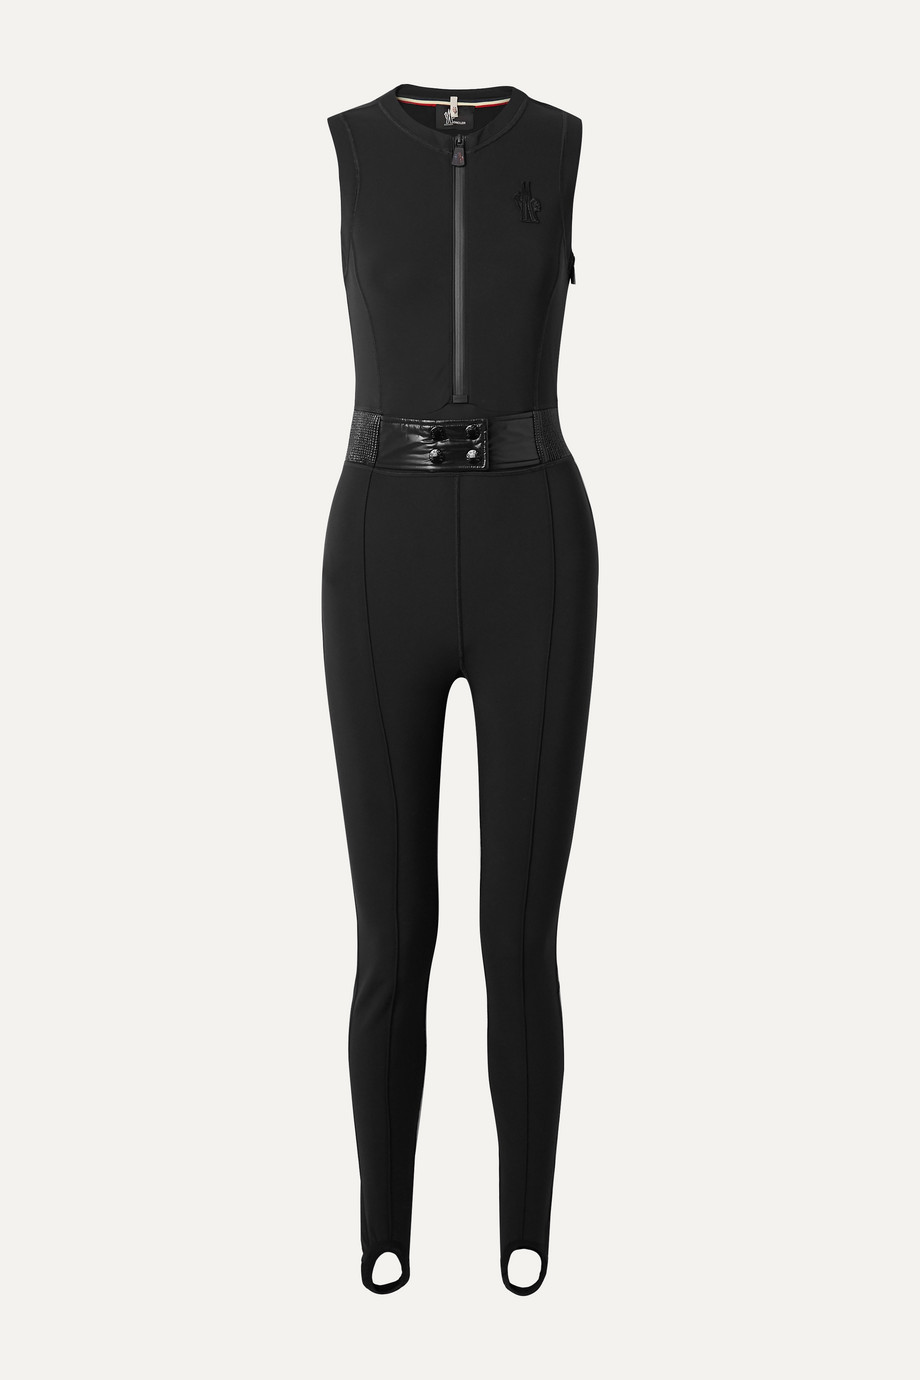 MONCLER GRENOBLE Belted stirrup stretch ski suit